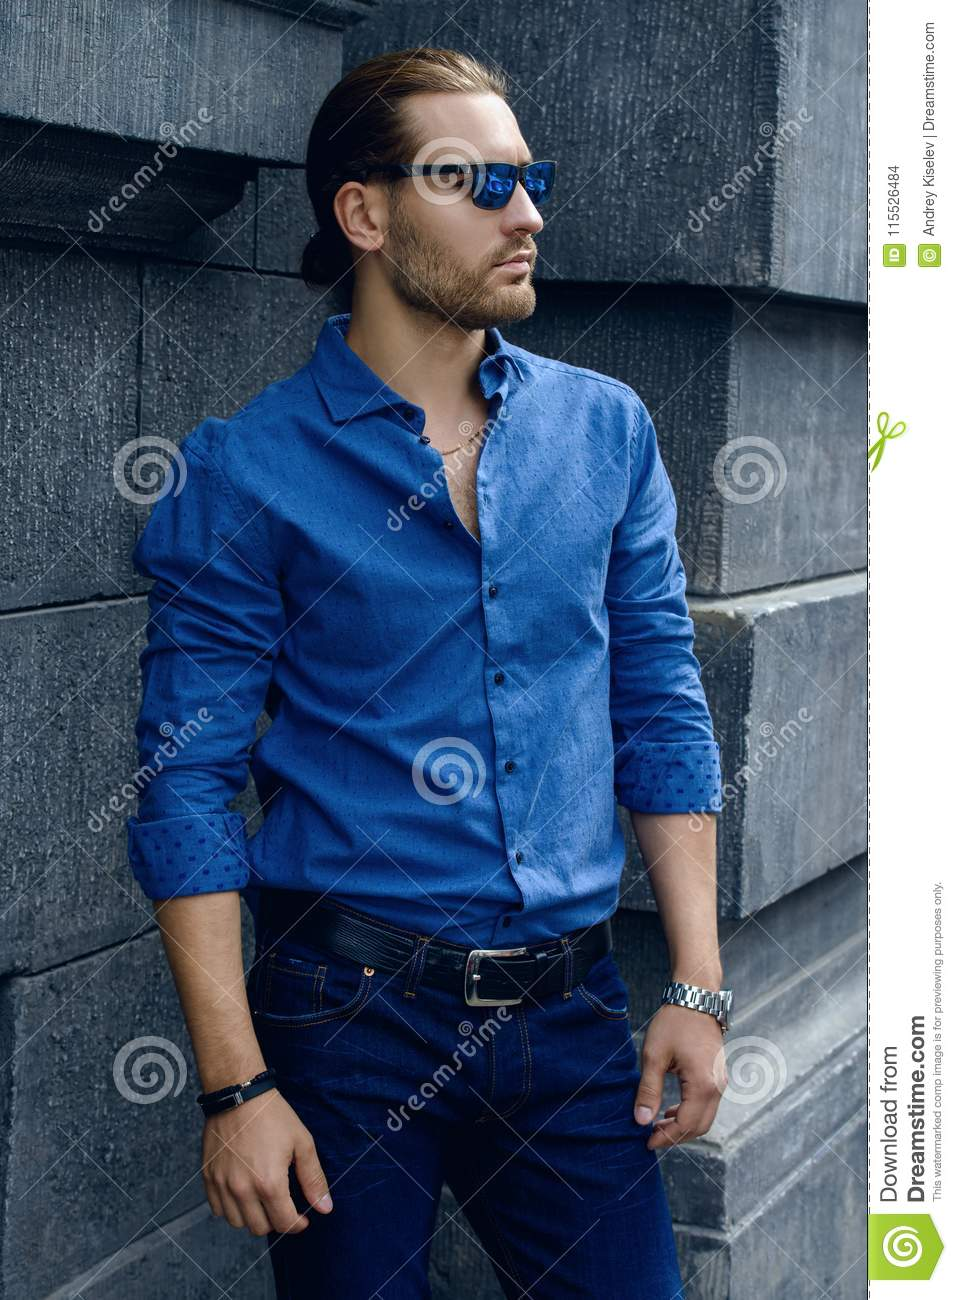 20f2bd5d Handsome young man in jeans clothes stands on a city street. Men`s fashion.  More similar stock images